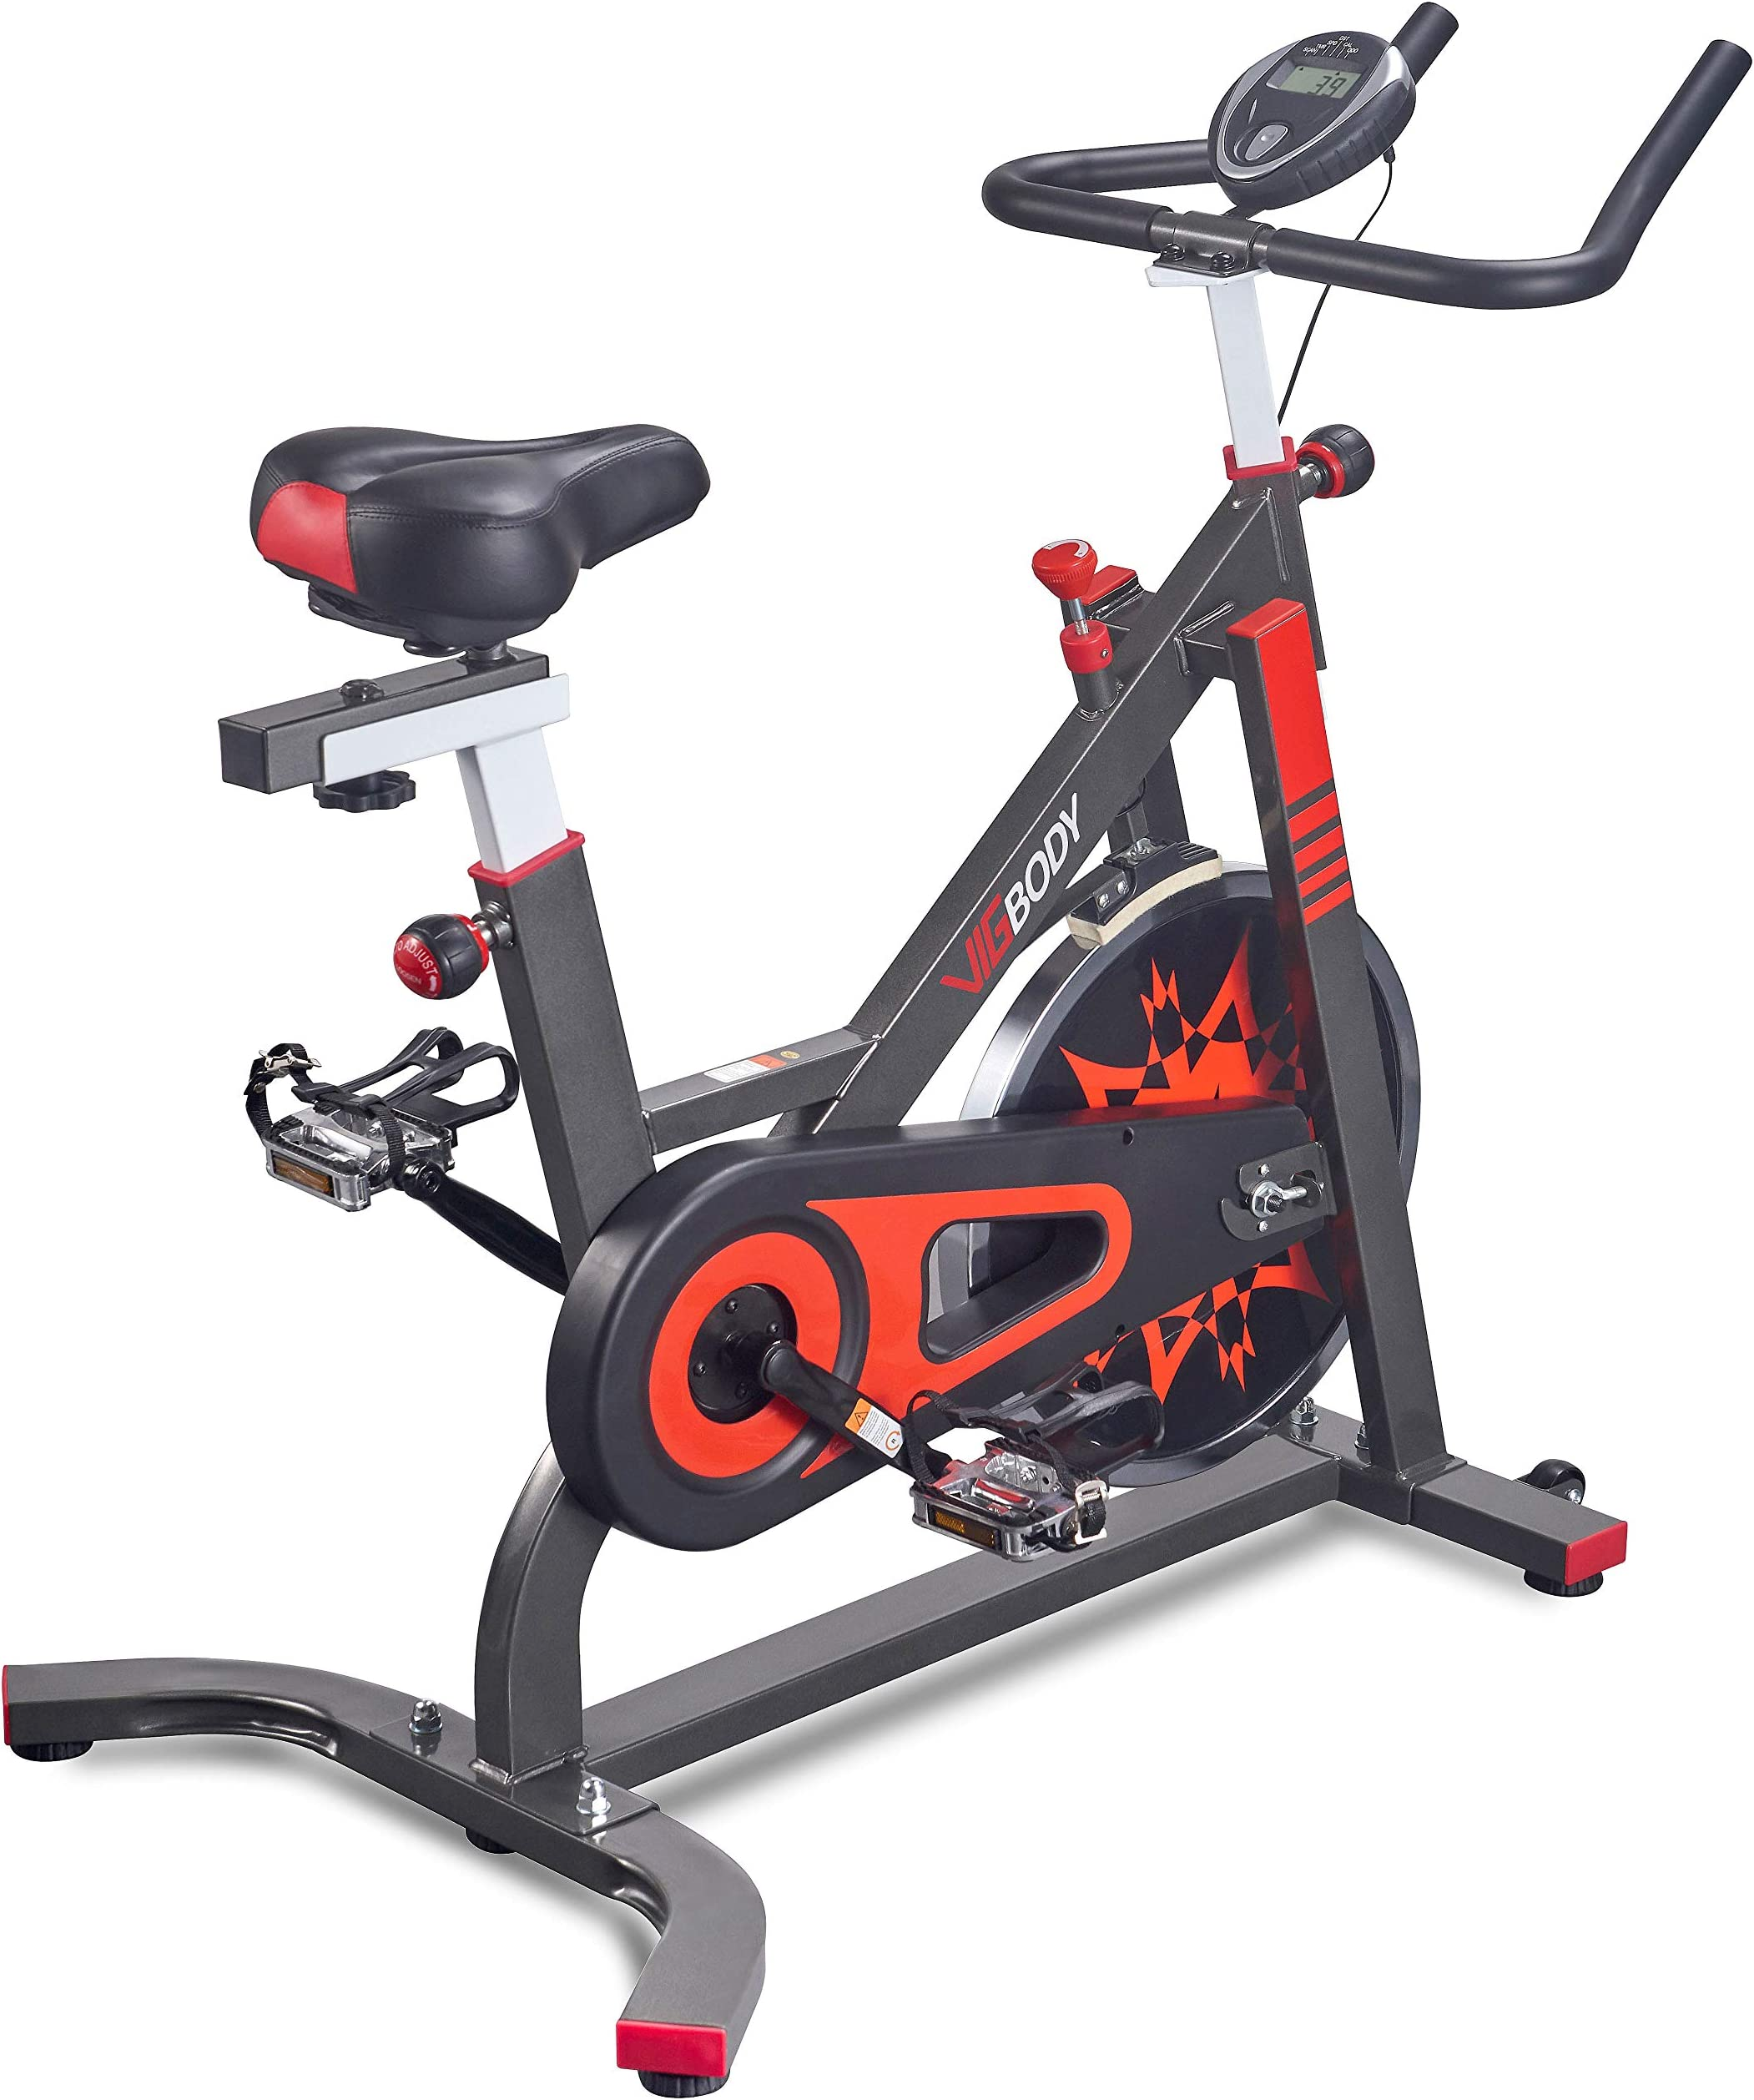 Bicycle Cycling Exercise Bike Stationary Fitness Cardio Indoor Home Workout Gym